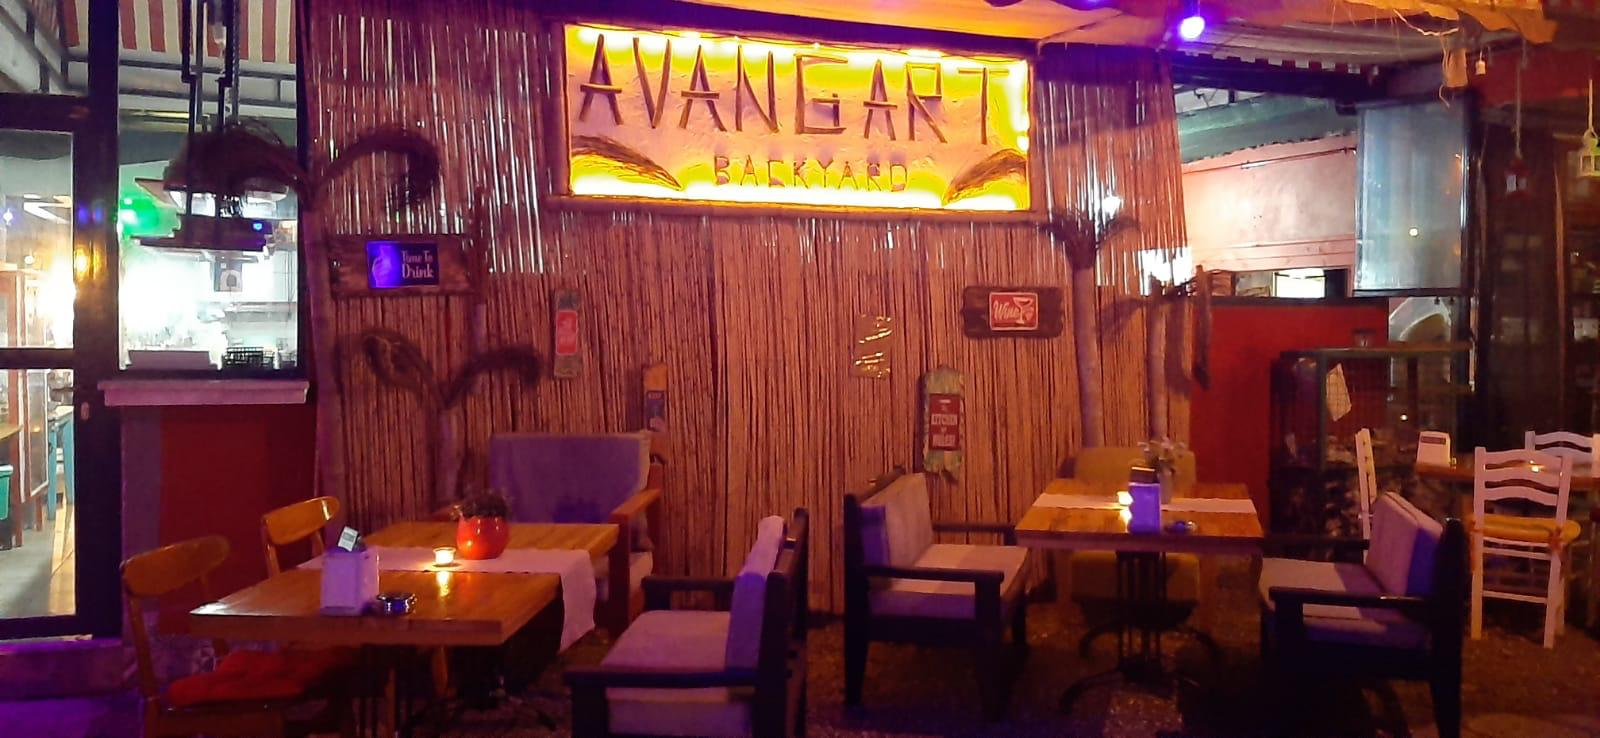 Read more about the article AVANGART BACKYARD